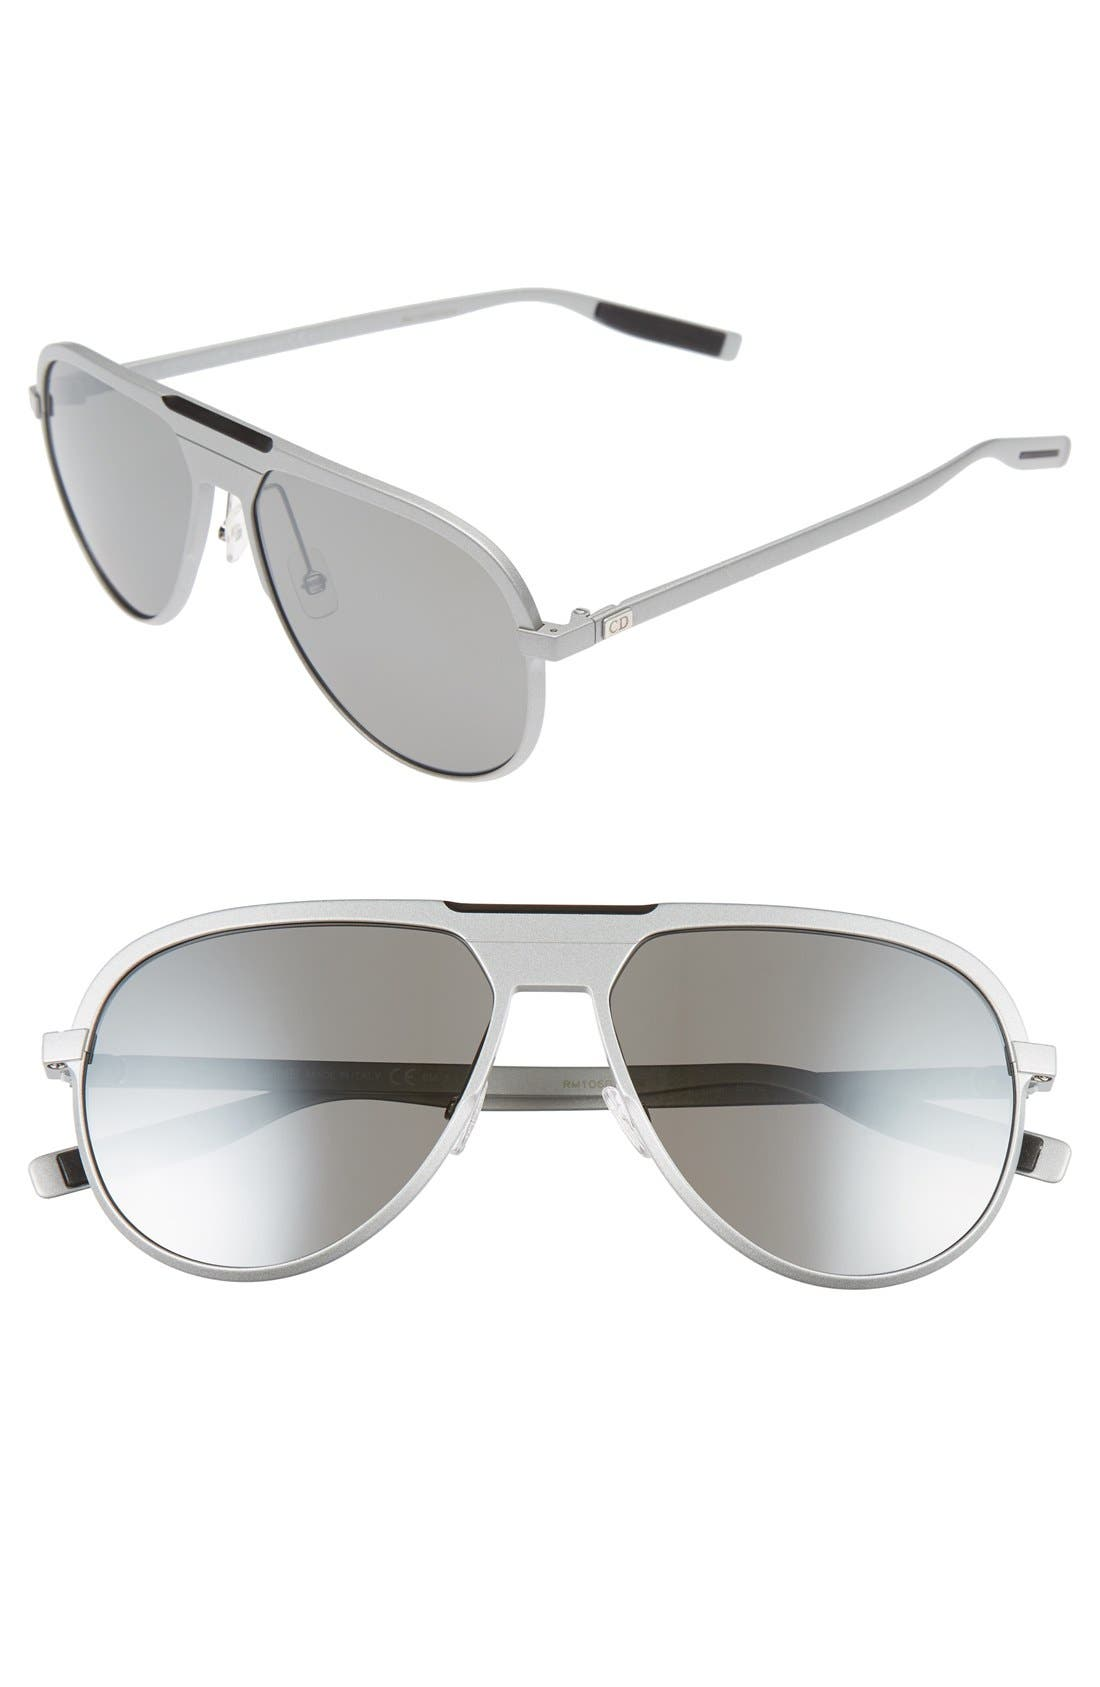 59mm Aviator Sunglasses,                         Main,                         color, Matte Palladium